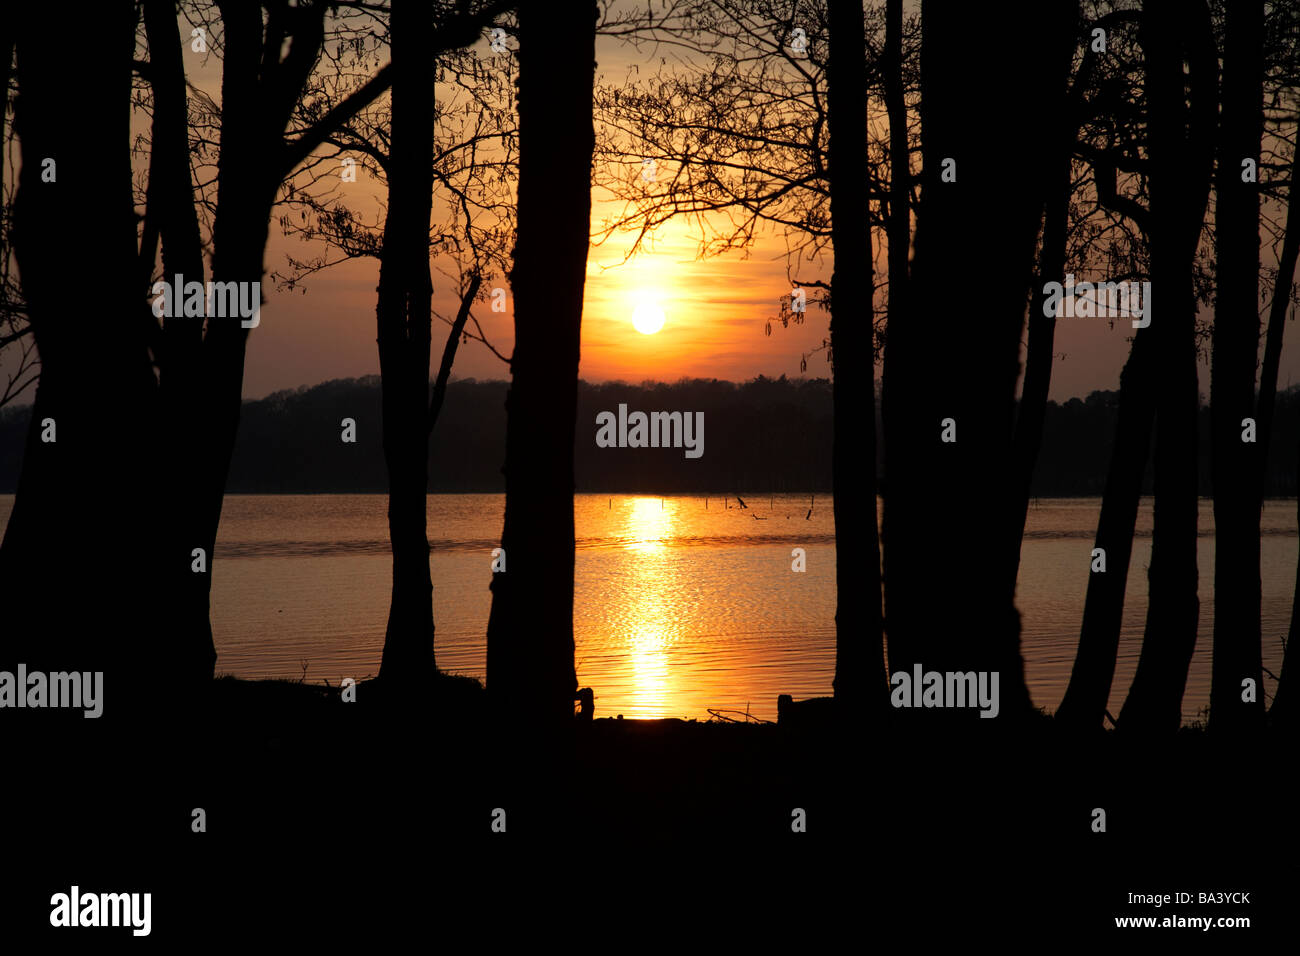 sunsetting through trees over lough neagh county antrim northern ireland - Stock Image